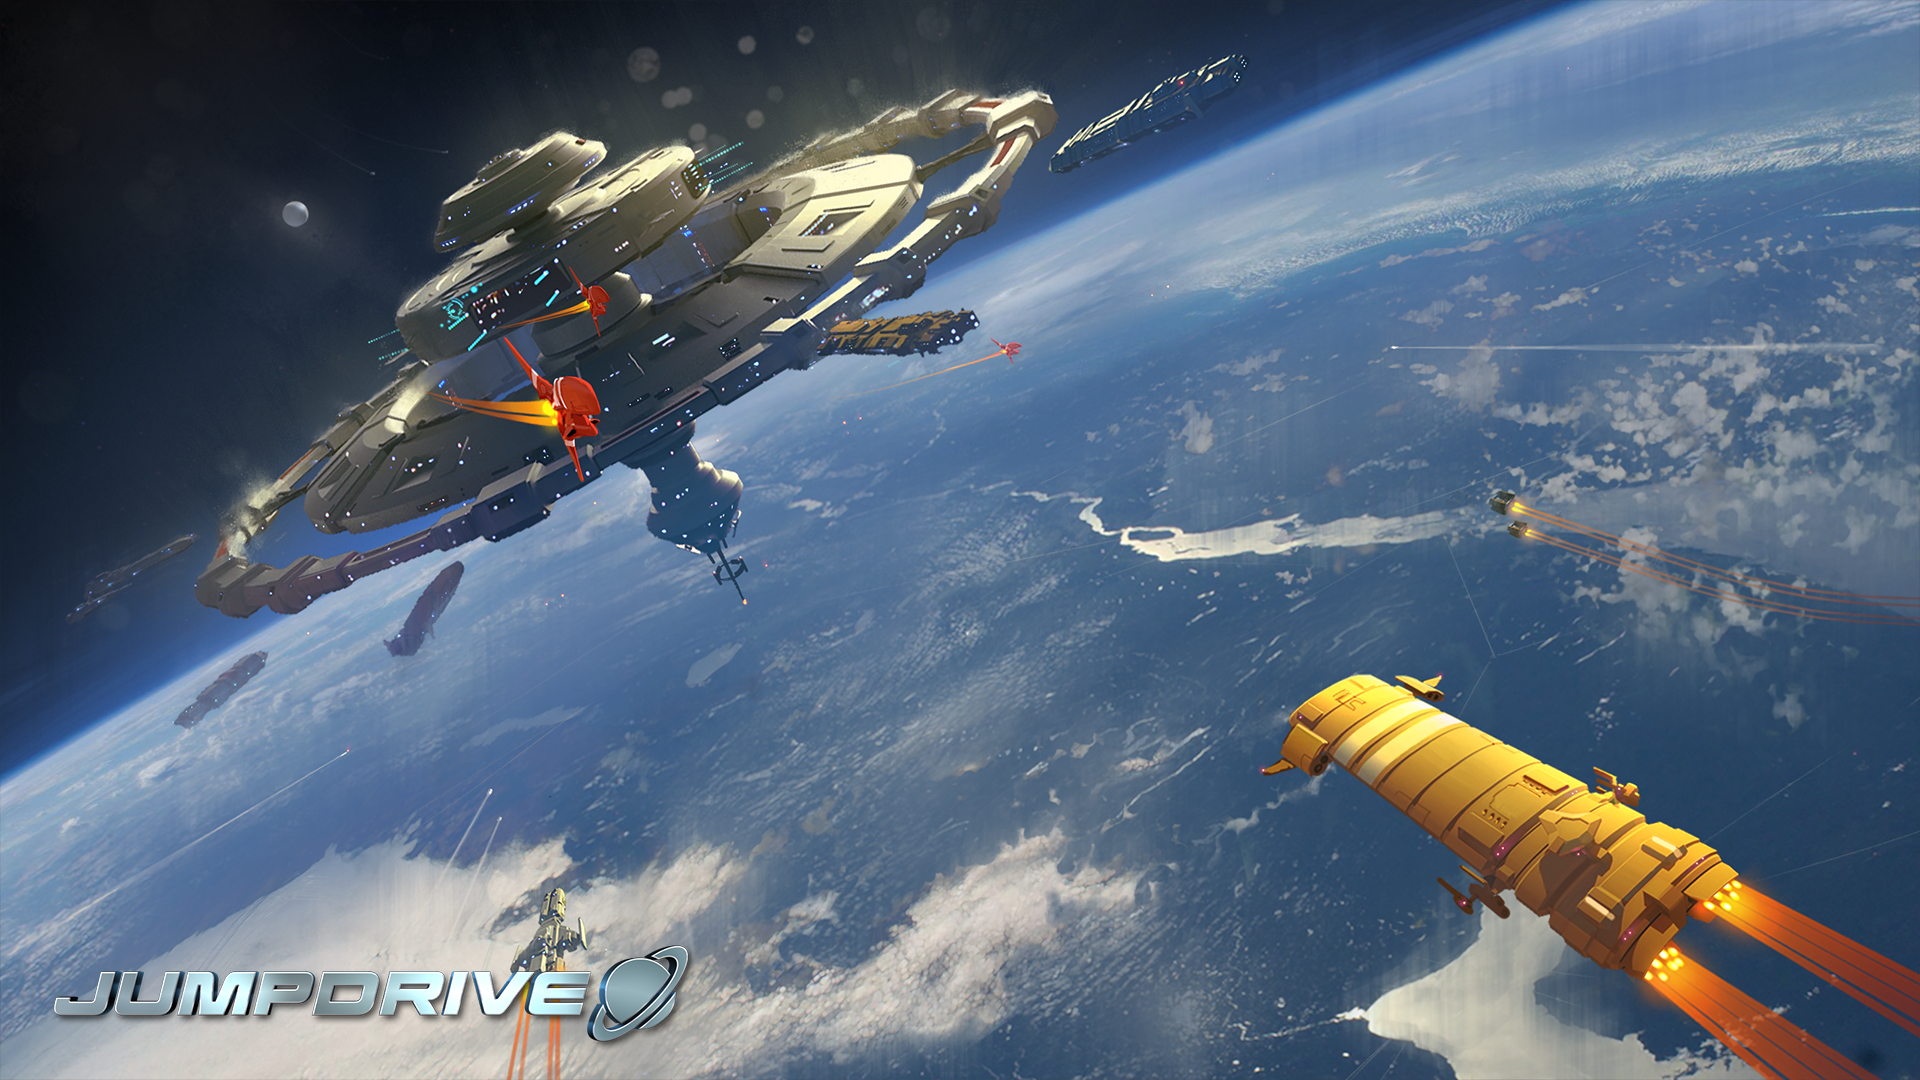 News - Jumpdrive Suddenly Launches on Steam